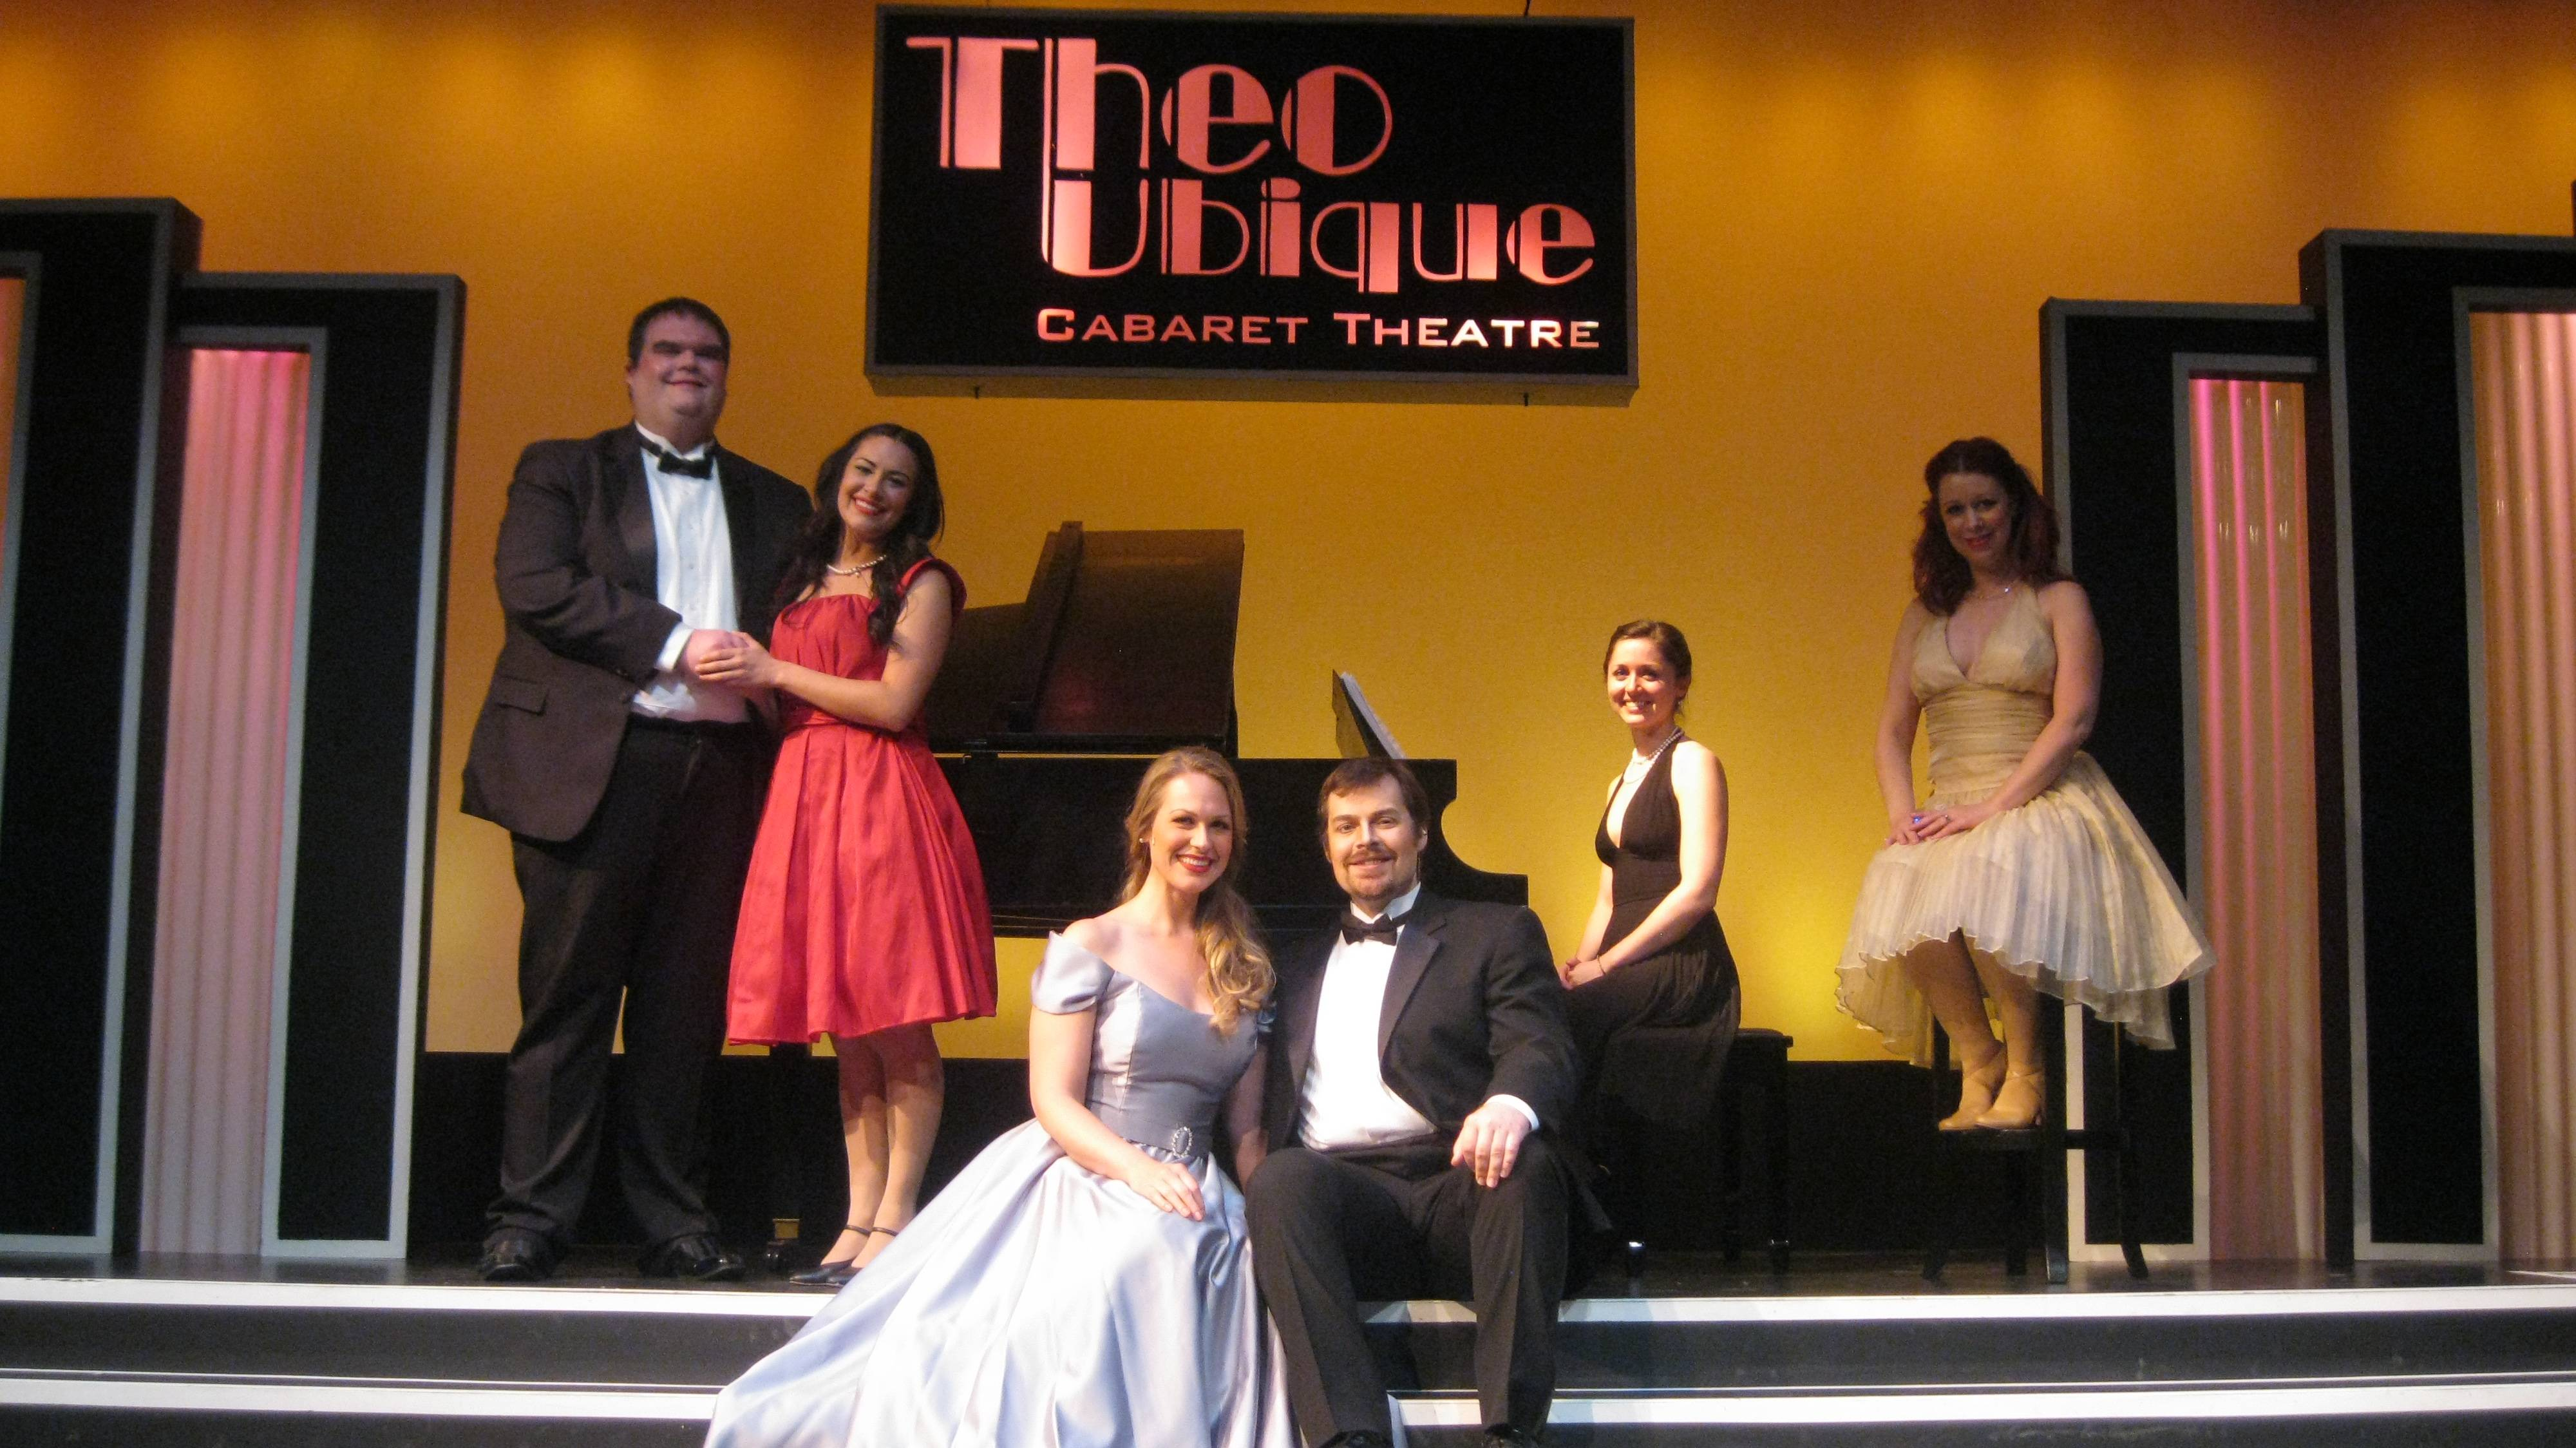 """Some Enchanted Evening"" cast includes Matt McNabb, Danielle Floyd of St. Charles, Amanda Batcher, Chadley Ballantyne, Amanda Hartley, and accompanist Elizabeth Doran of Wheaton."